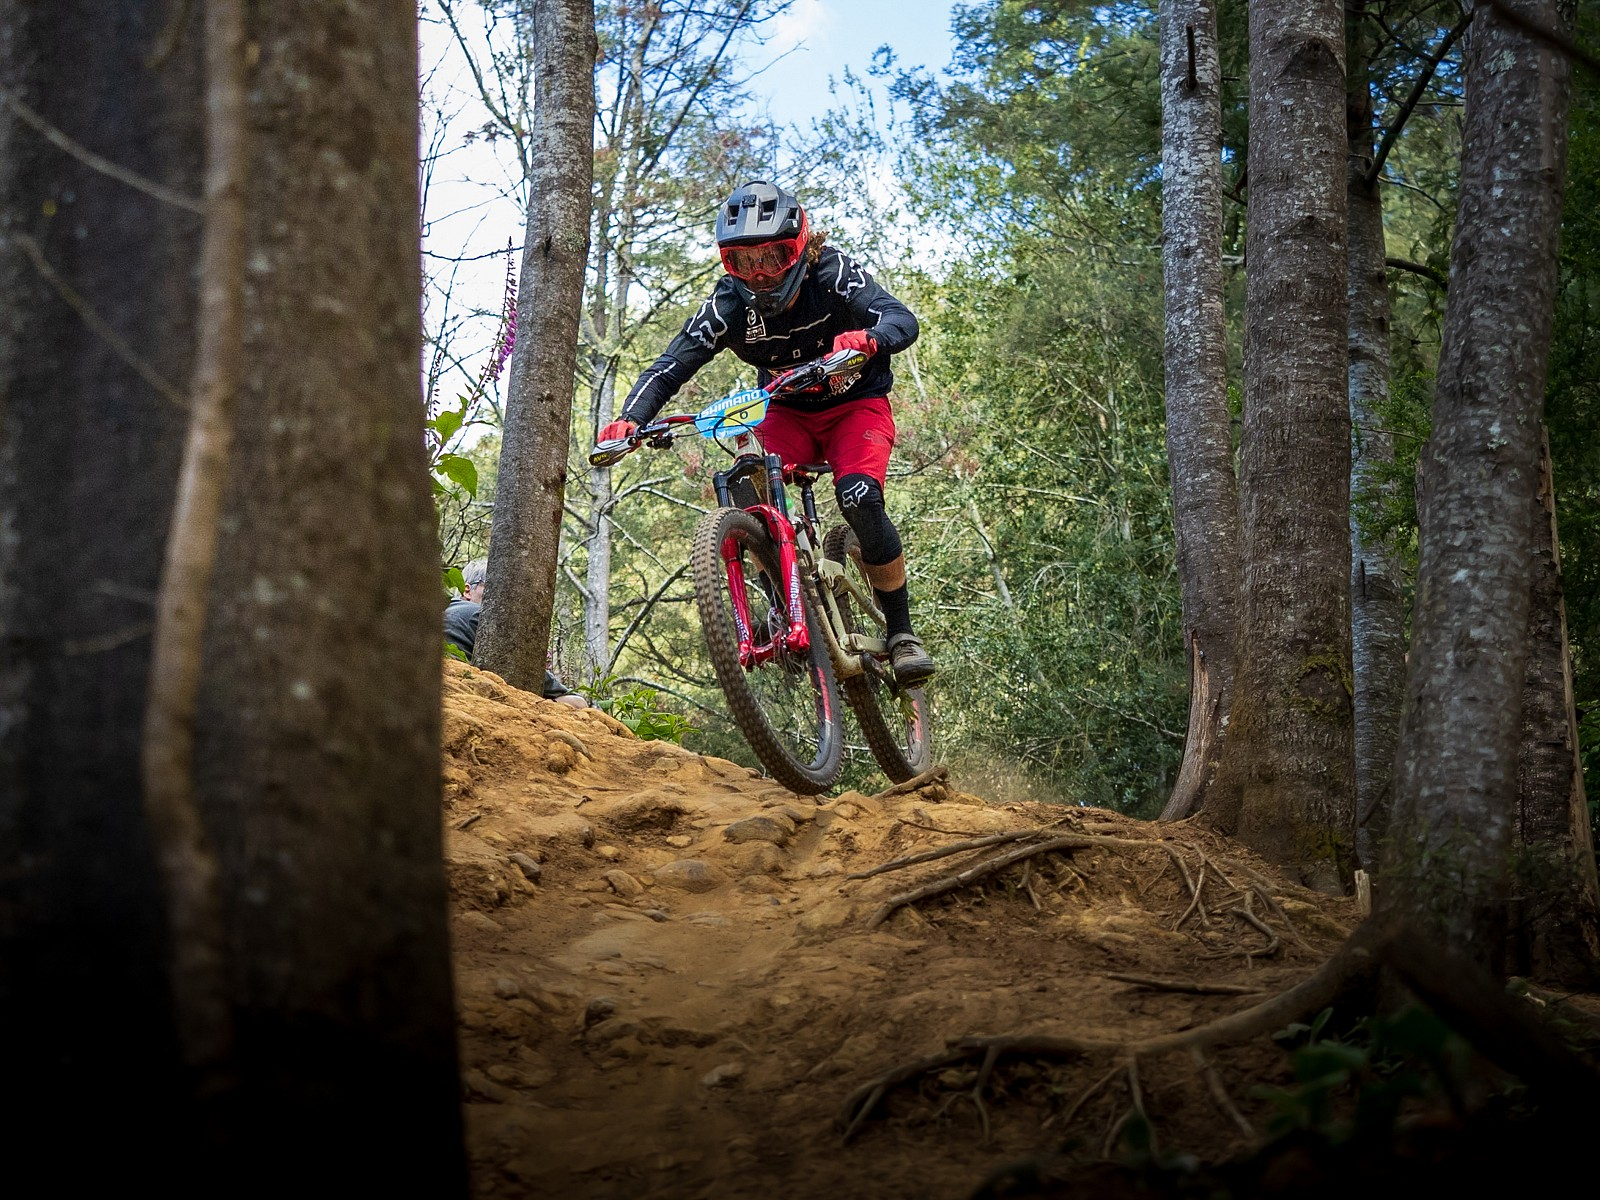 171119-Tassie-1425 - jack.fletcher86 - Mountain Biking Pictures - Vital MTB